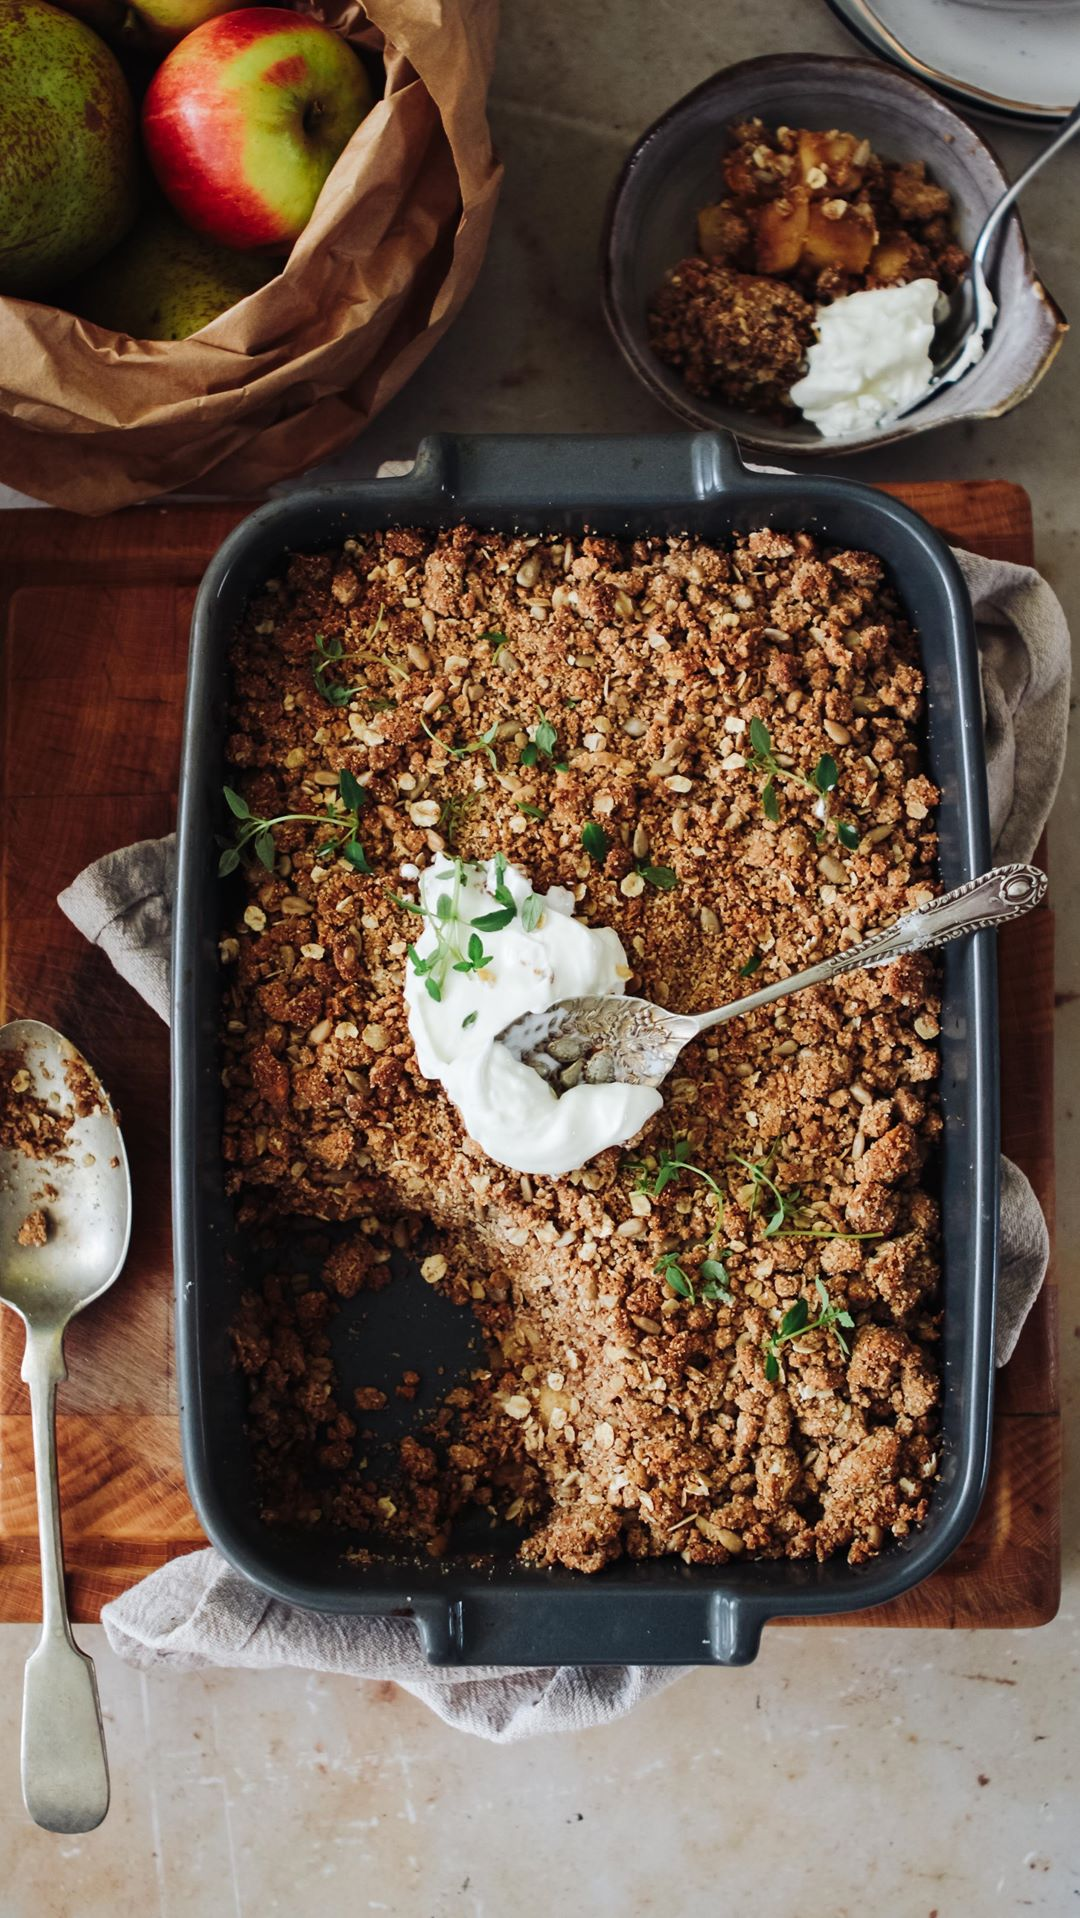 Spiced Apple & Pear Peanut Butter Crumble, @rebelrecipes